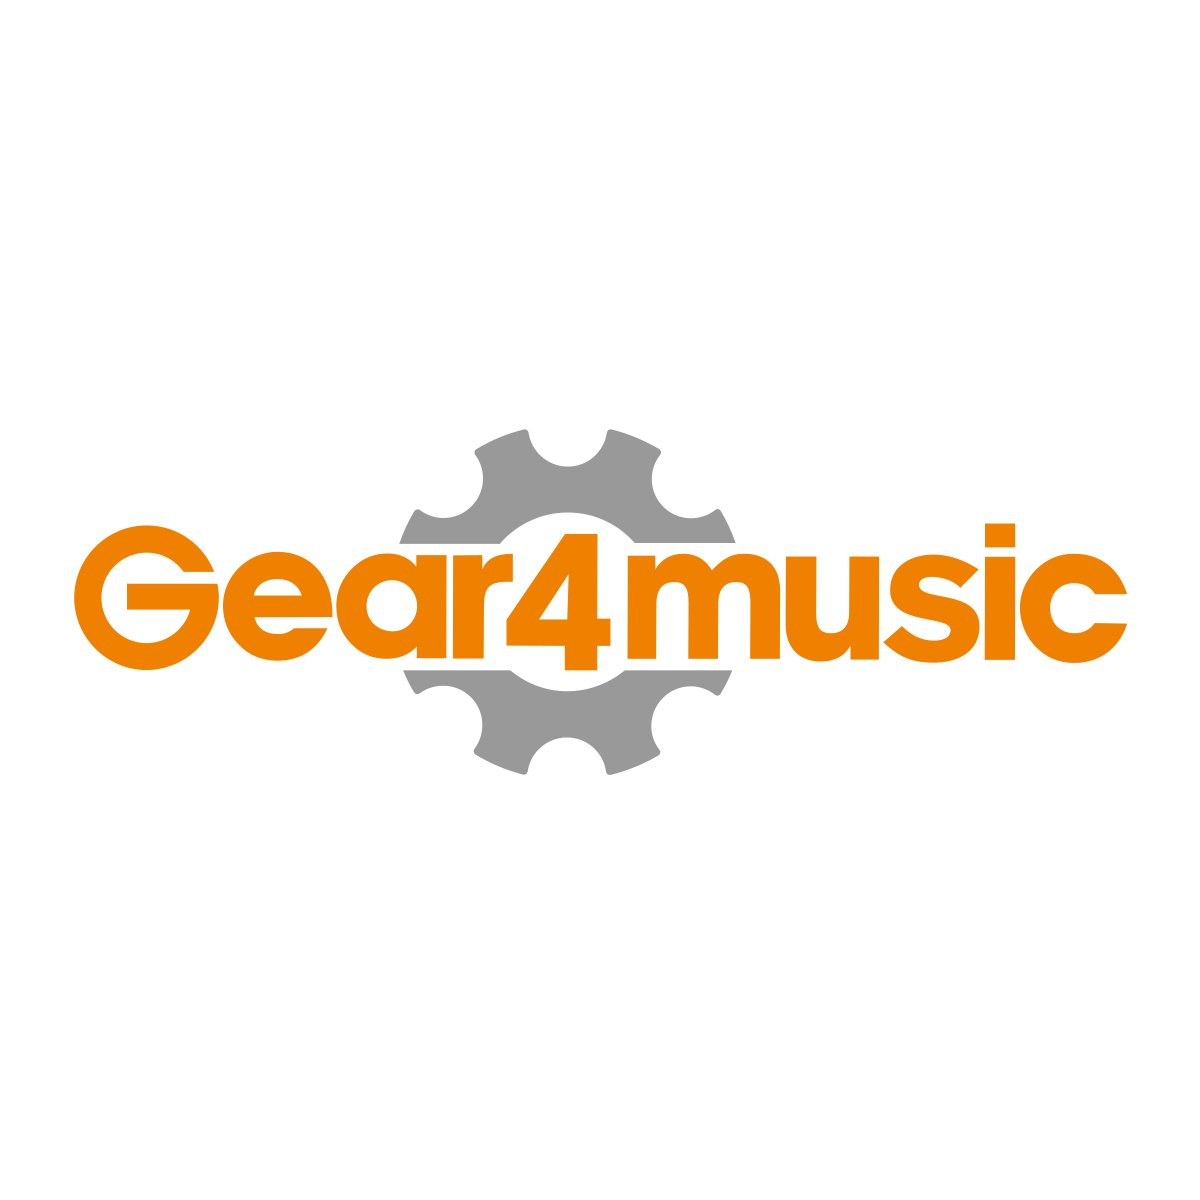 Flygelhorn av Gear4music